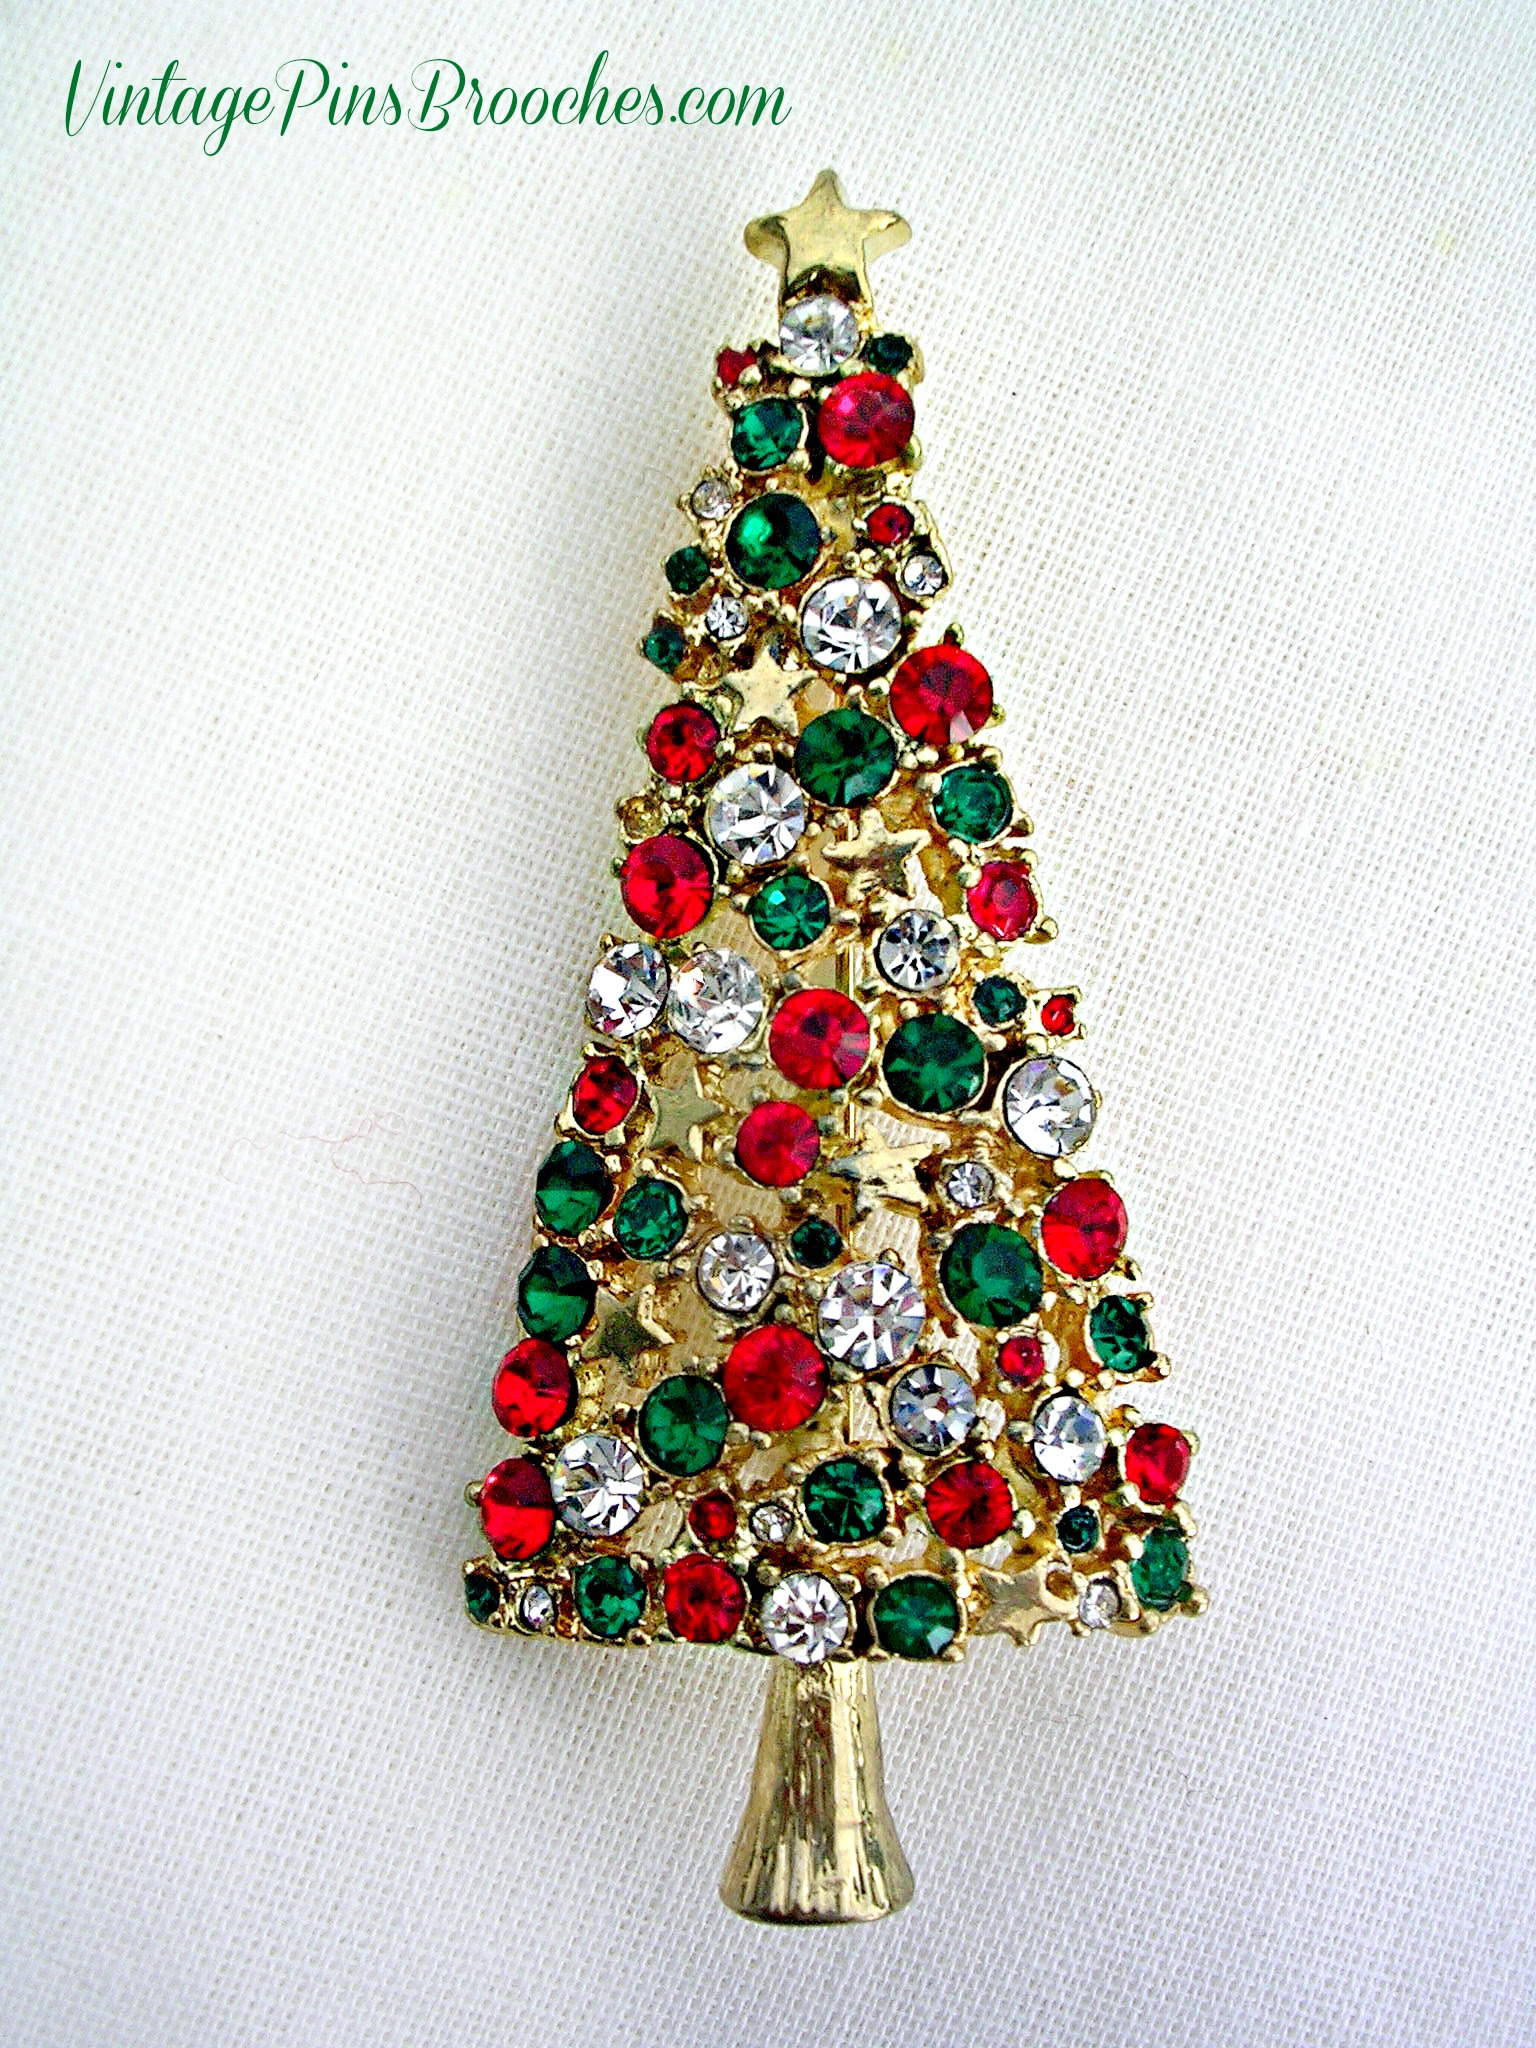 957cdc1c2d3 Vintage Gold Plate Diamond Emerald Ruby Tall Christmas Tree Brooch Pin,  Ladies Holiday Jewelry Brooches P76 – Vintage Pins Brooches .